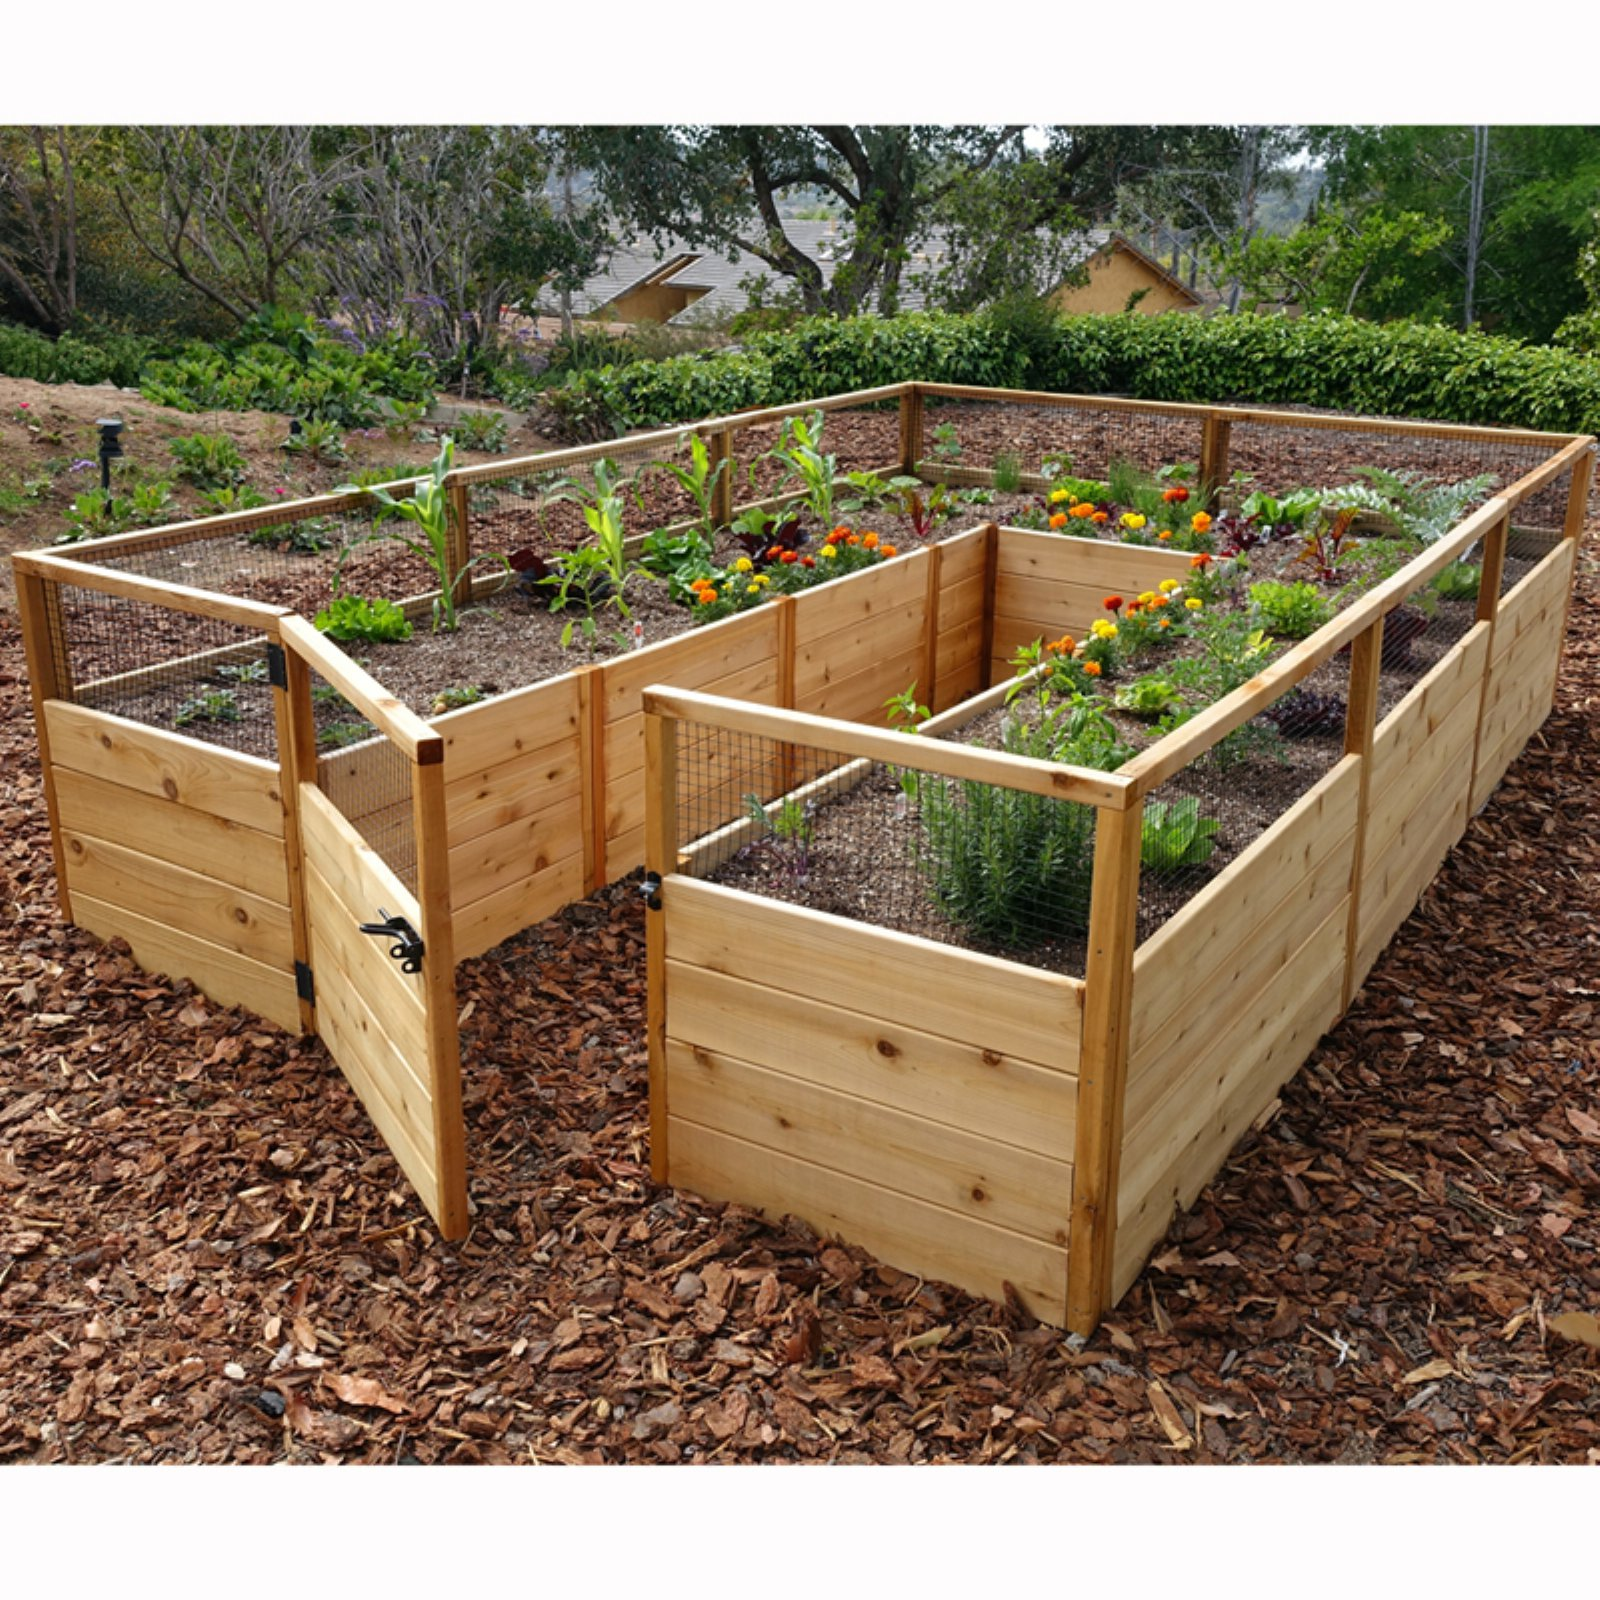 Outdoor Living Today Raised Cedar Garden Bed - 8 x 12 ft.